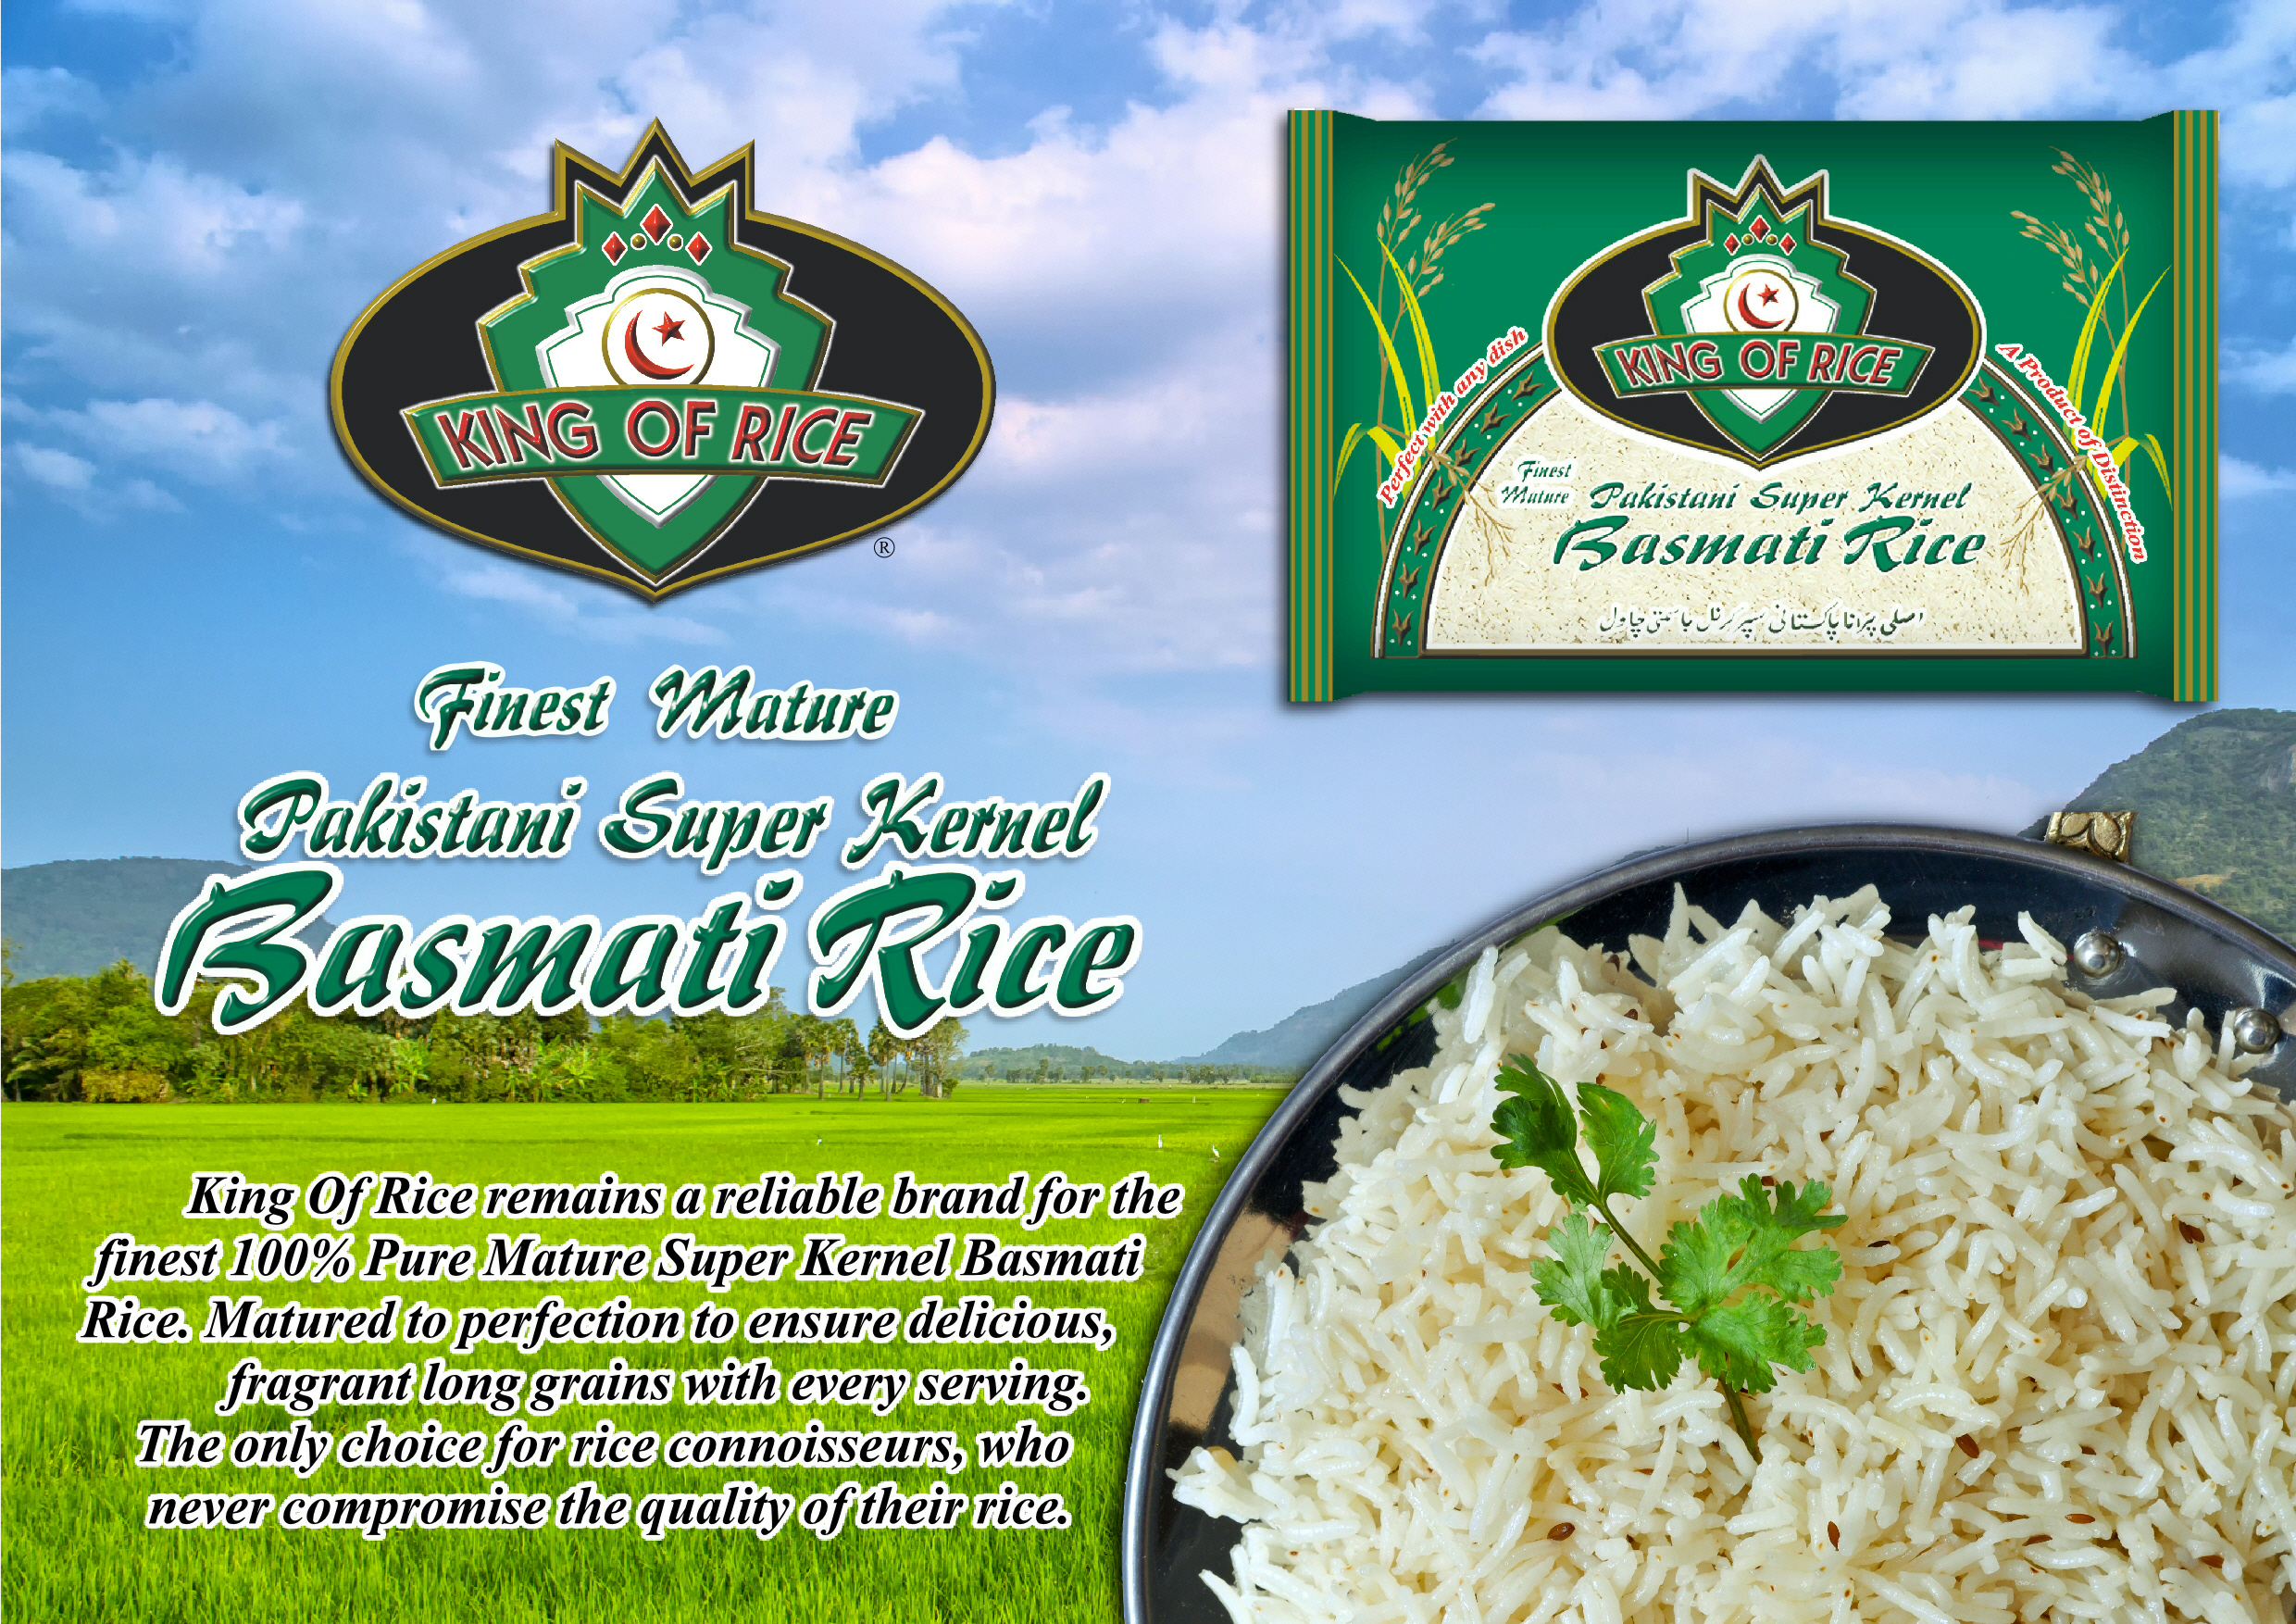 Wholesale Pure Basmati Rice,Super Kernel Basmati Rice,Long